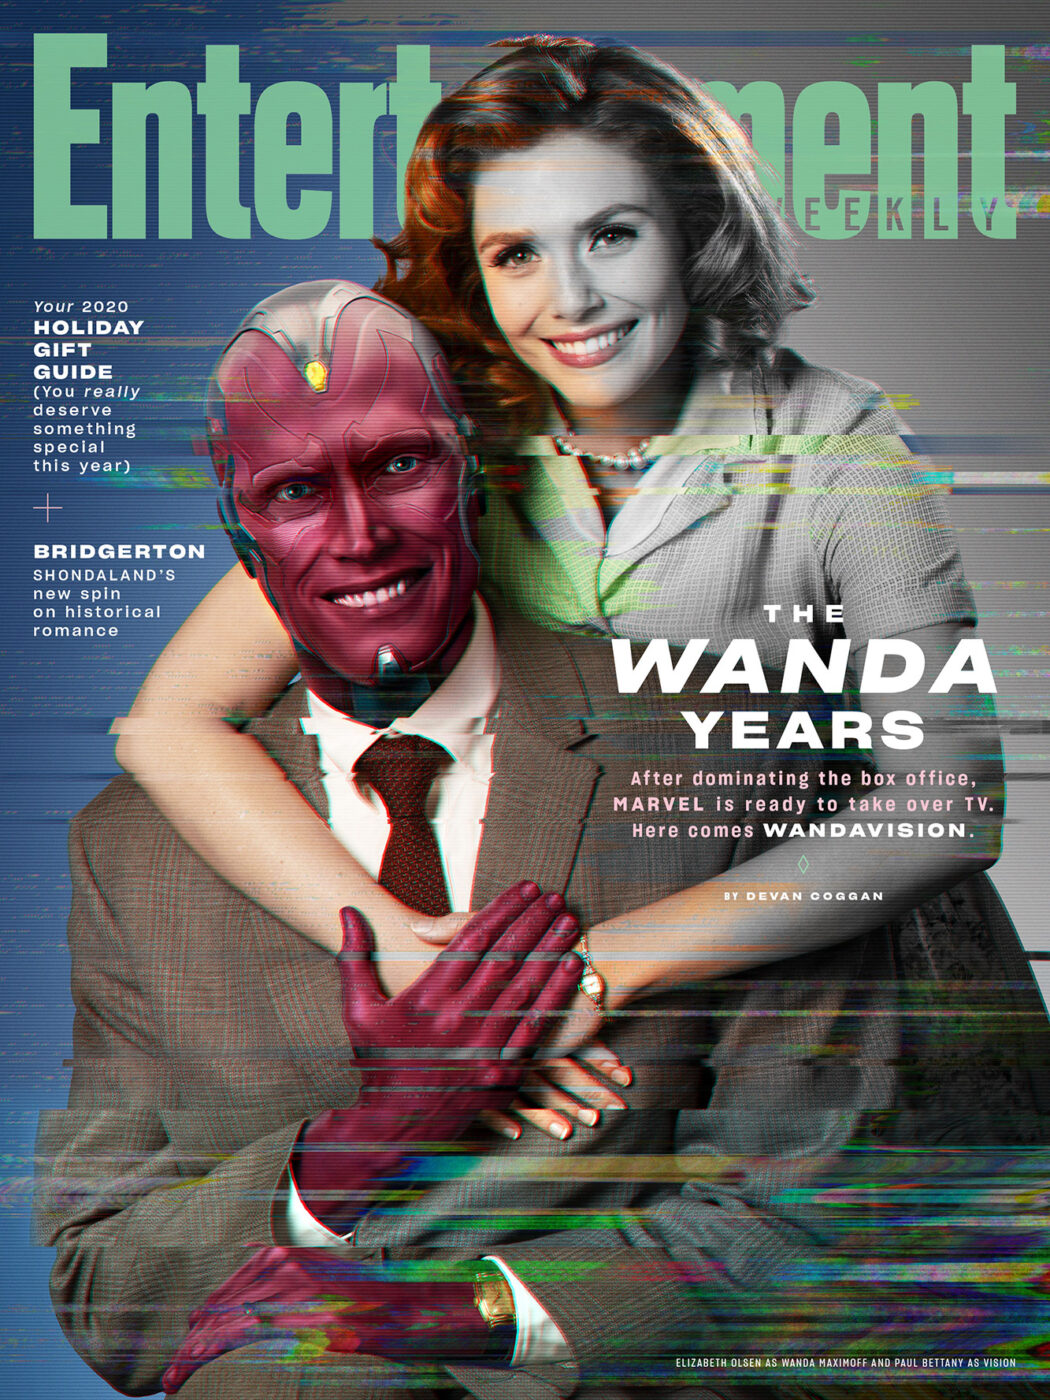 Entertainment Weekly December cover featuring Elizabeth Olsen and Paul Bettany from Marvel's WandaVision.